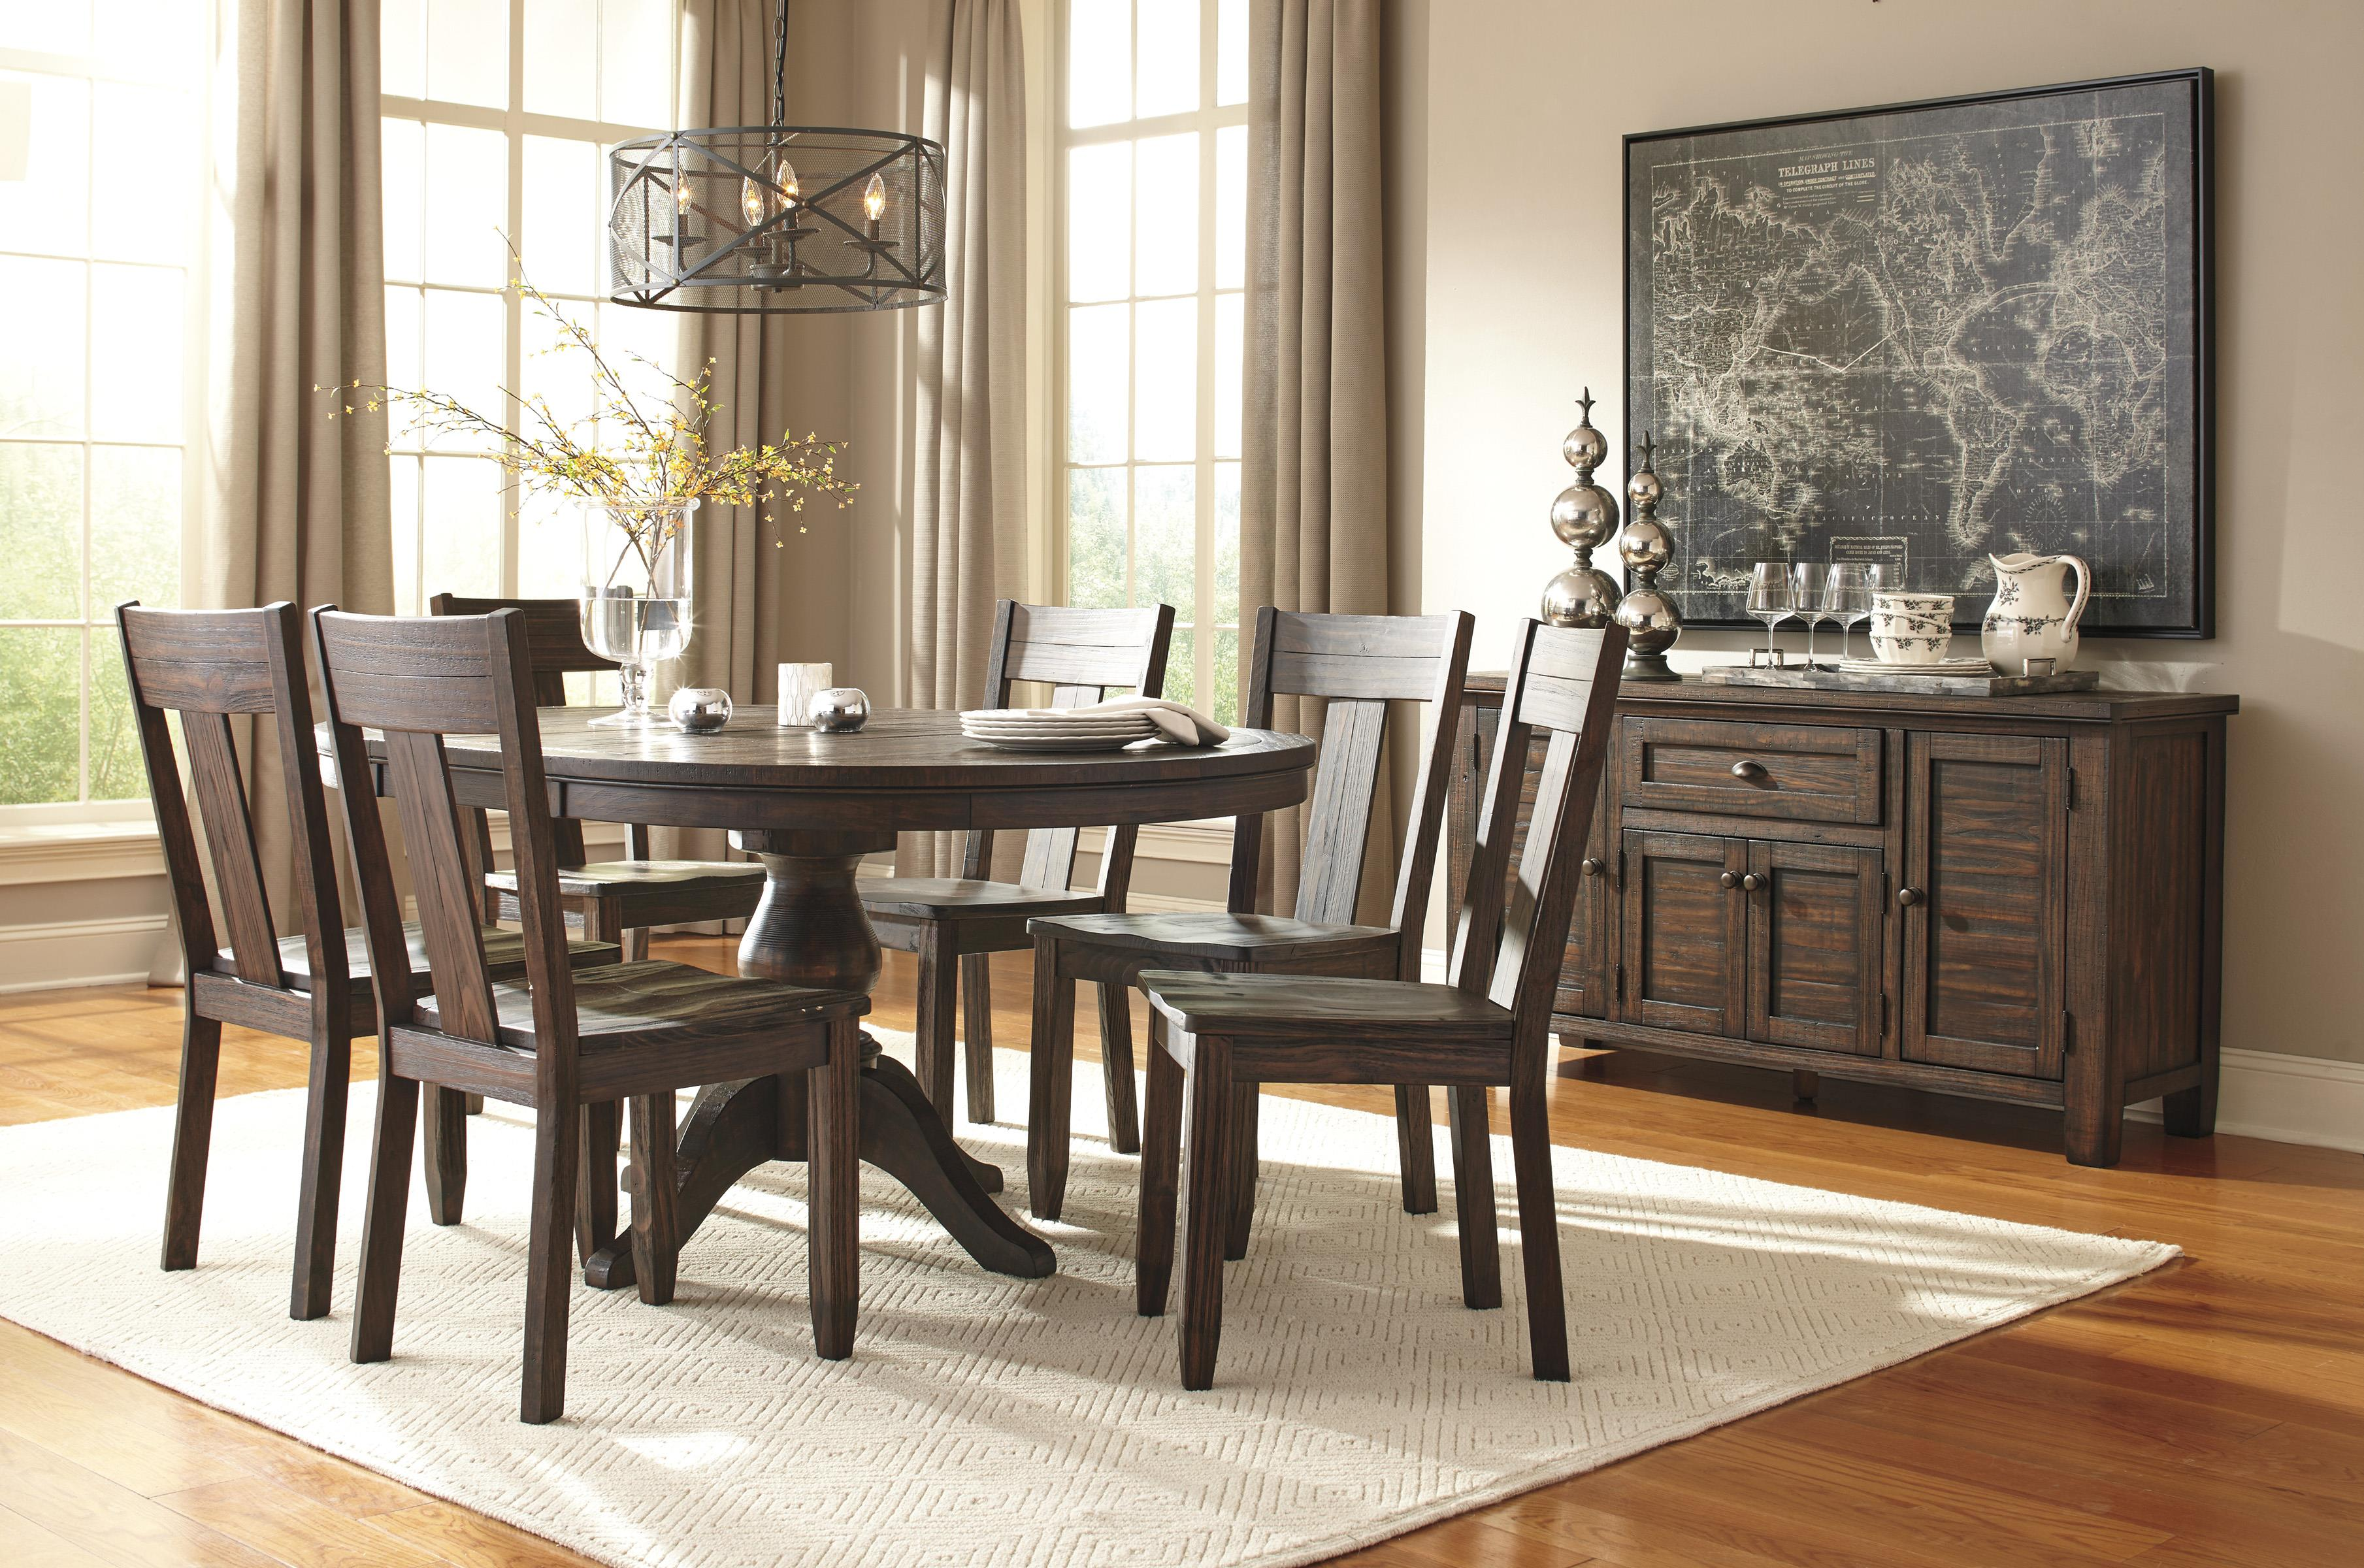 7 piece oval dining table set with wood seat side chairs by signature design by ashley wolf. Black Bedroom Furniture Sets. Home Design Ideas